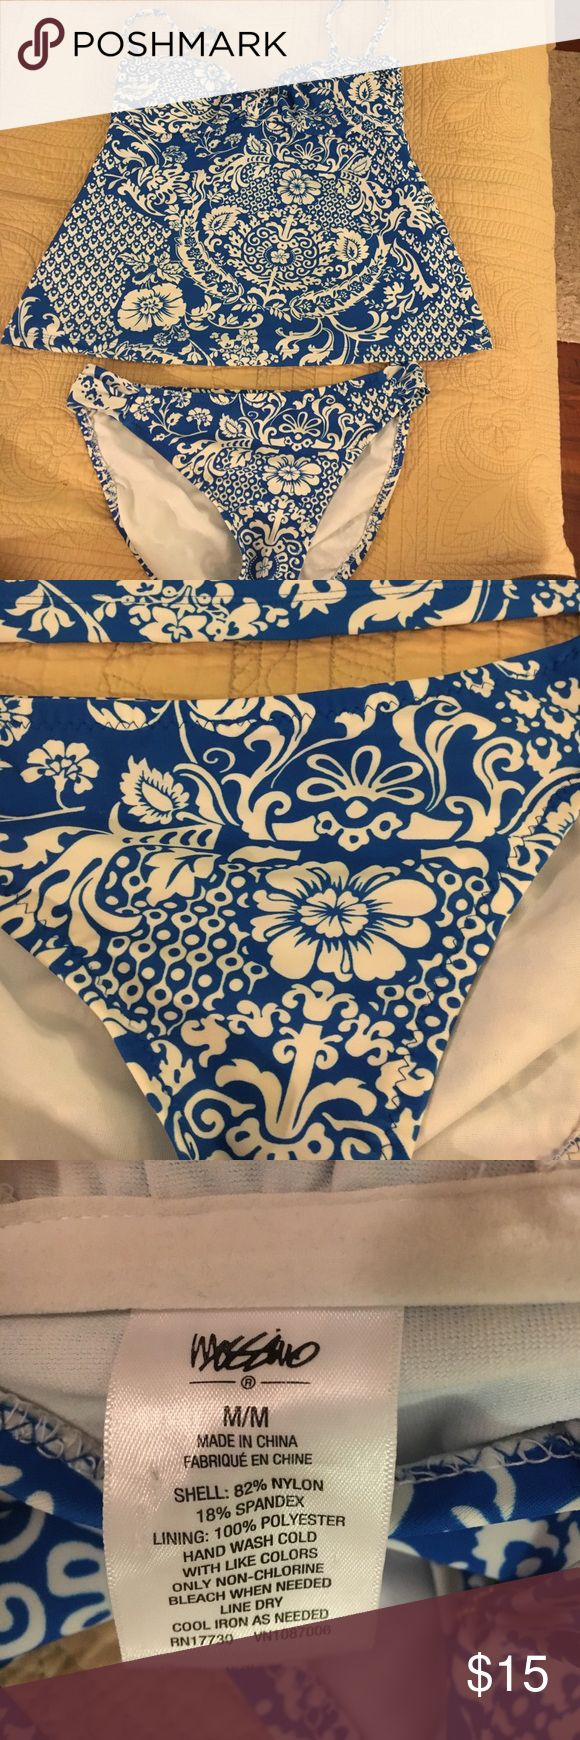 Mossimo blue and white bikini 👙 size medium LN Mossimo medium blue and white tankini top and bottoms like new Mossimo Supply Co Swim Bikinis